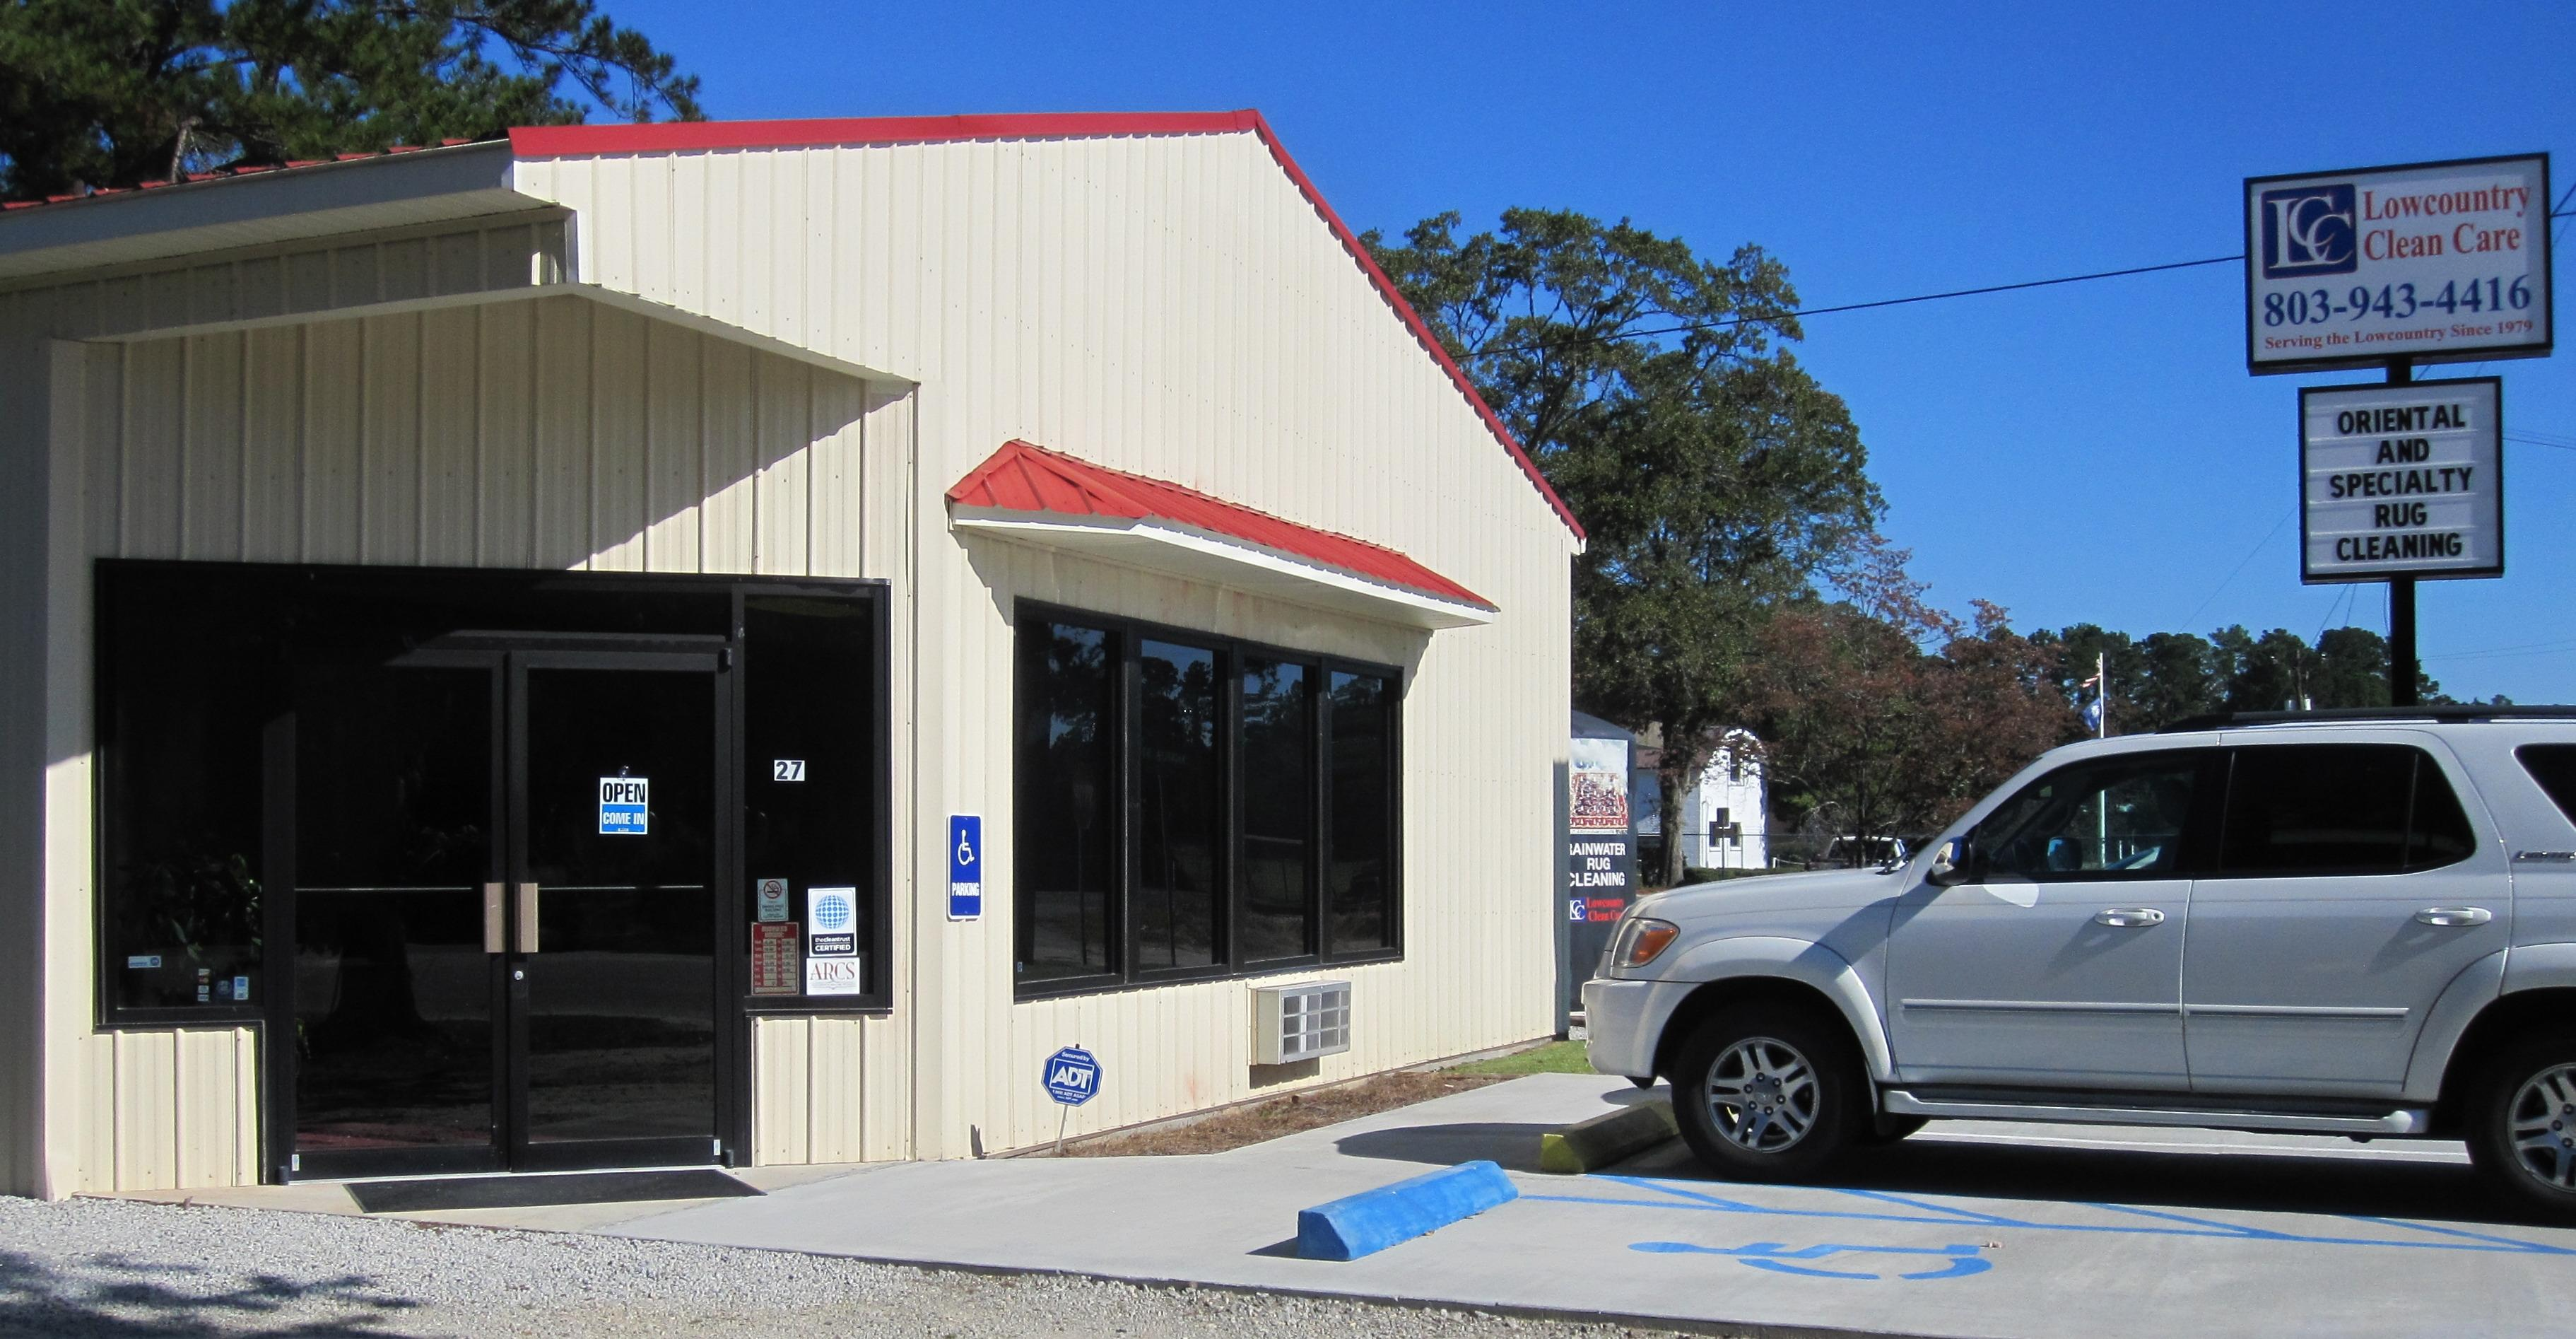 Lowcountry clean care in hilton head island sc whitepages for Red fish bluffton sc